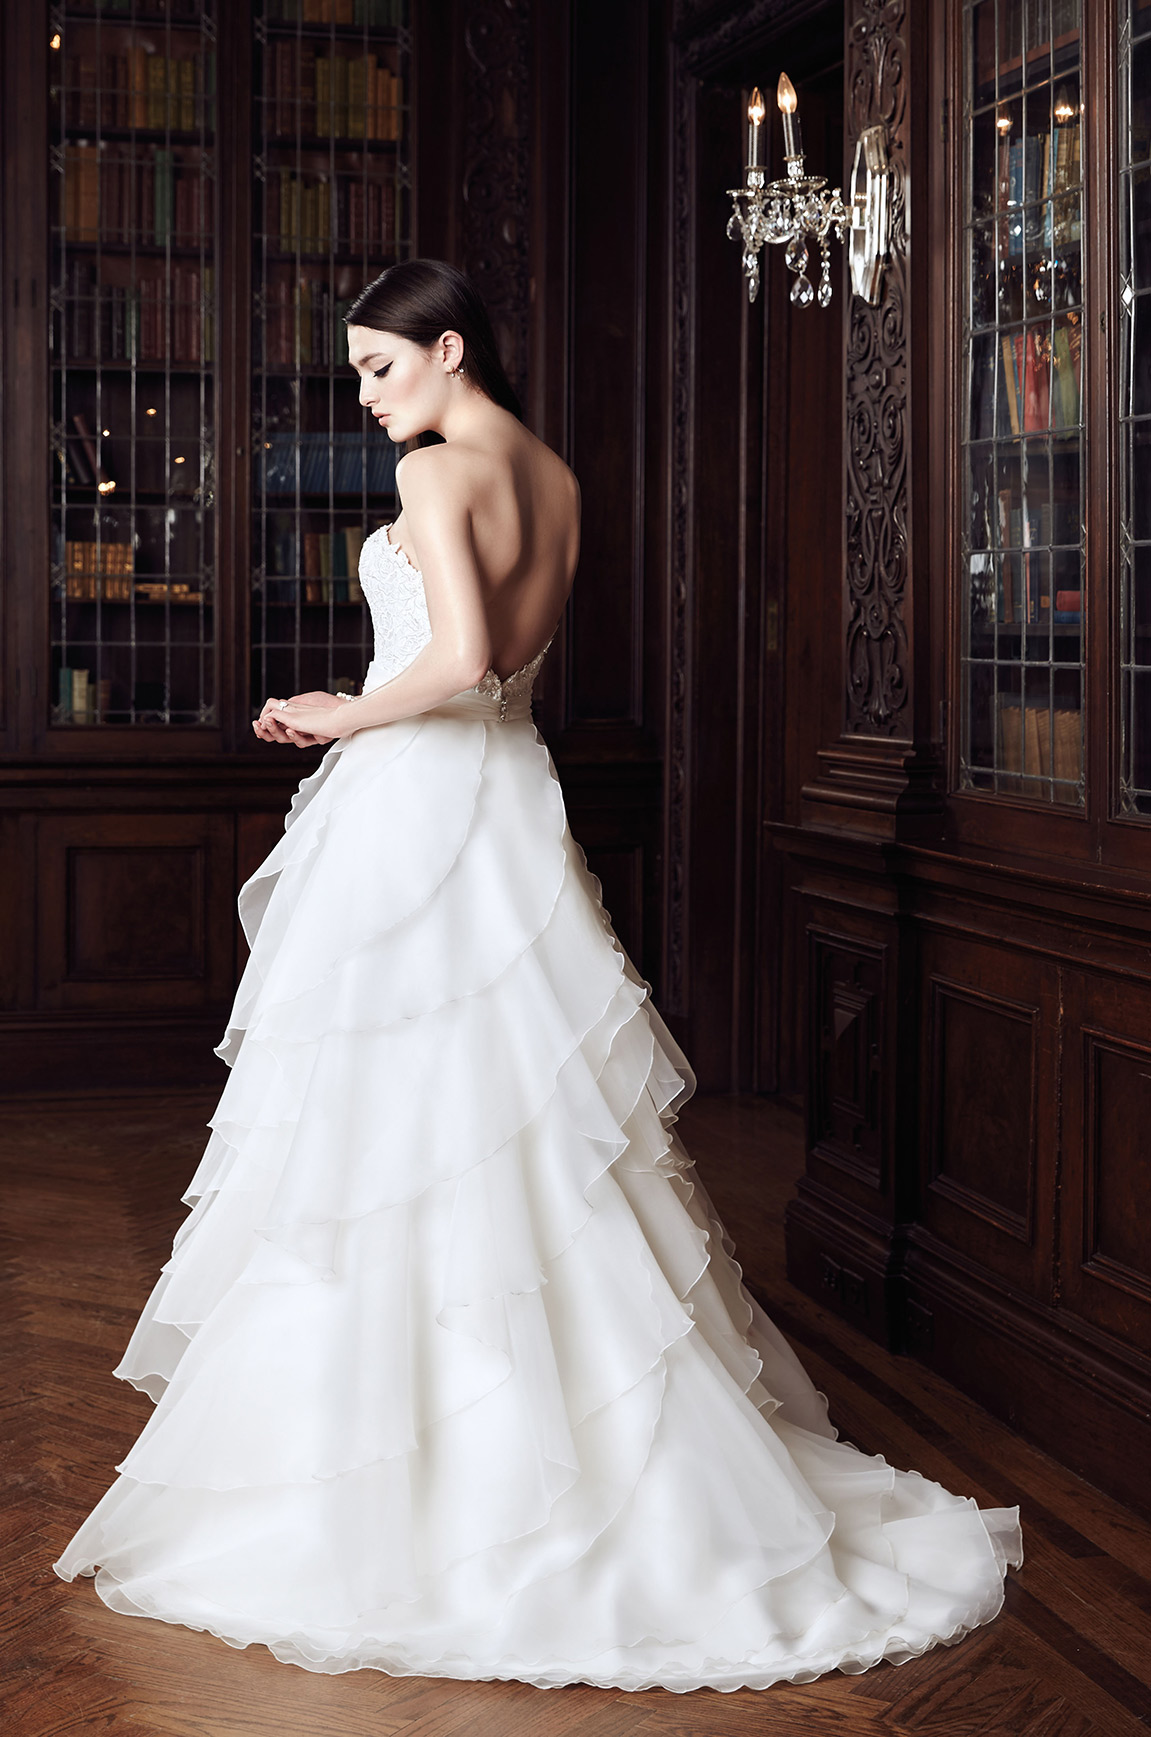 Wedding Dresses Jefferson St Dallas Tx : Style back mikaella bridal wedding dress gown